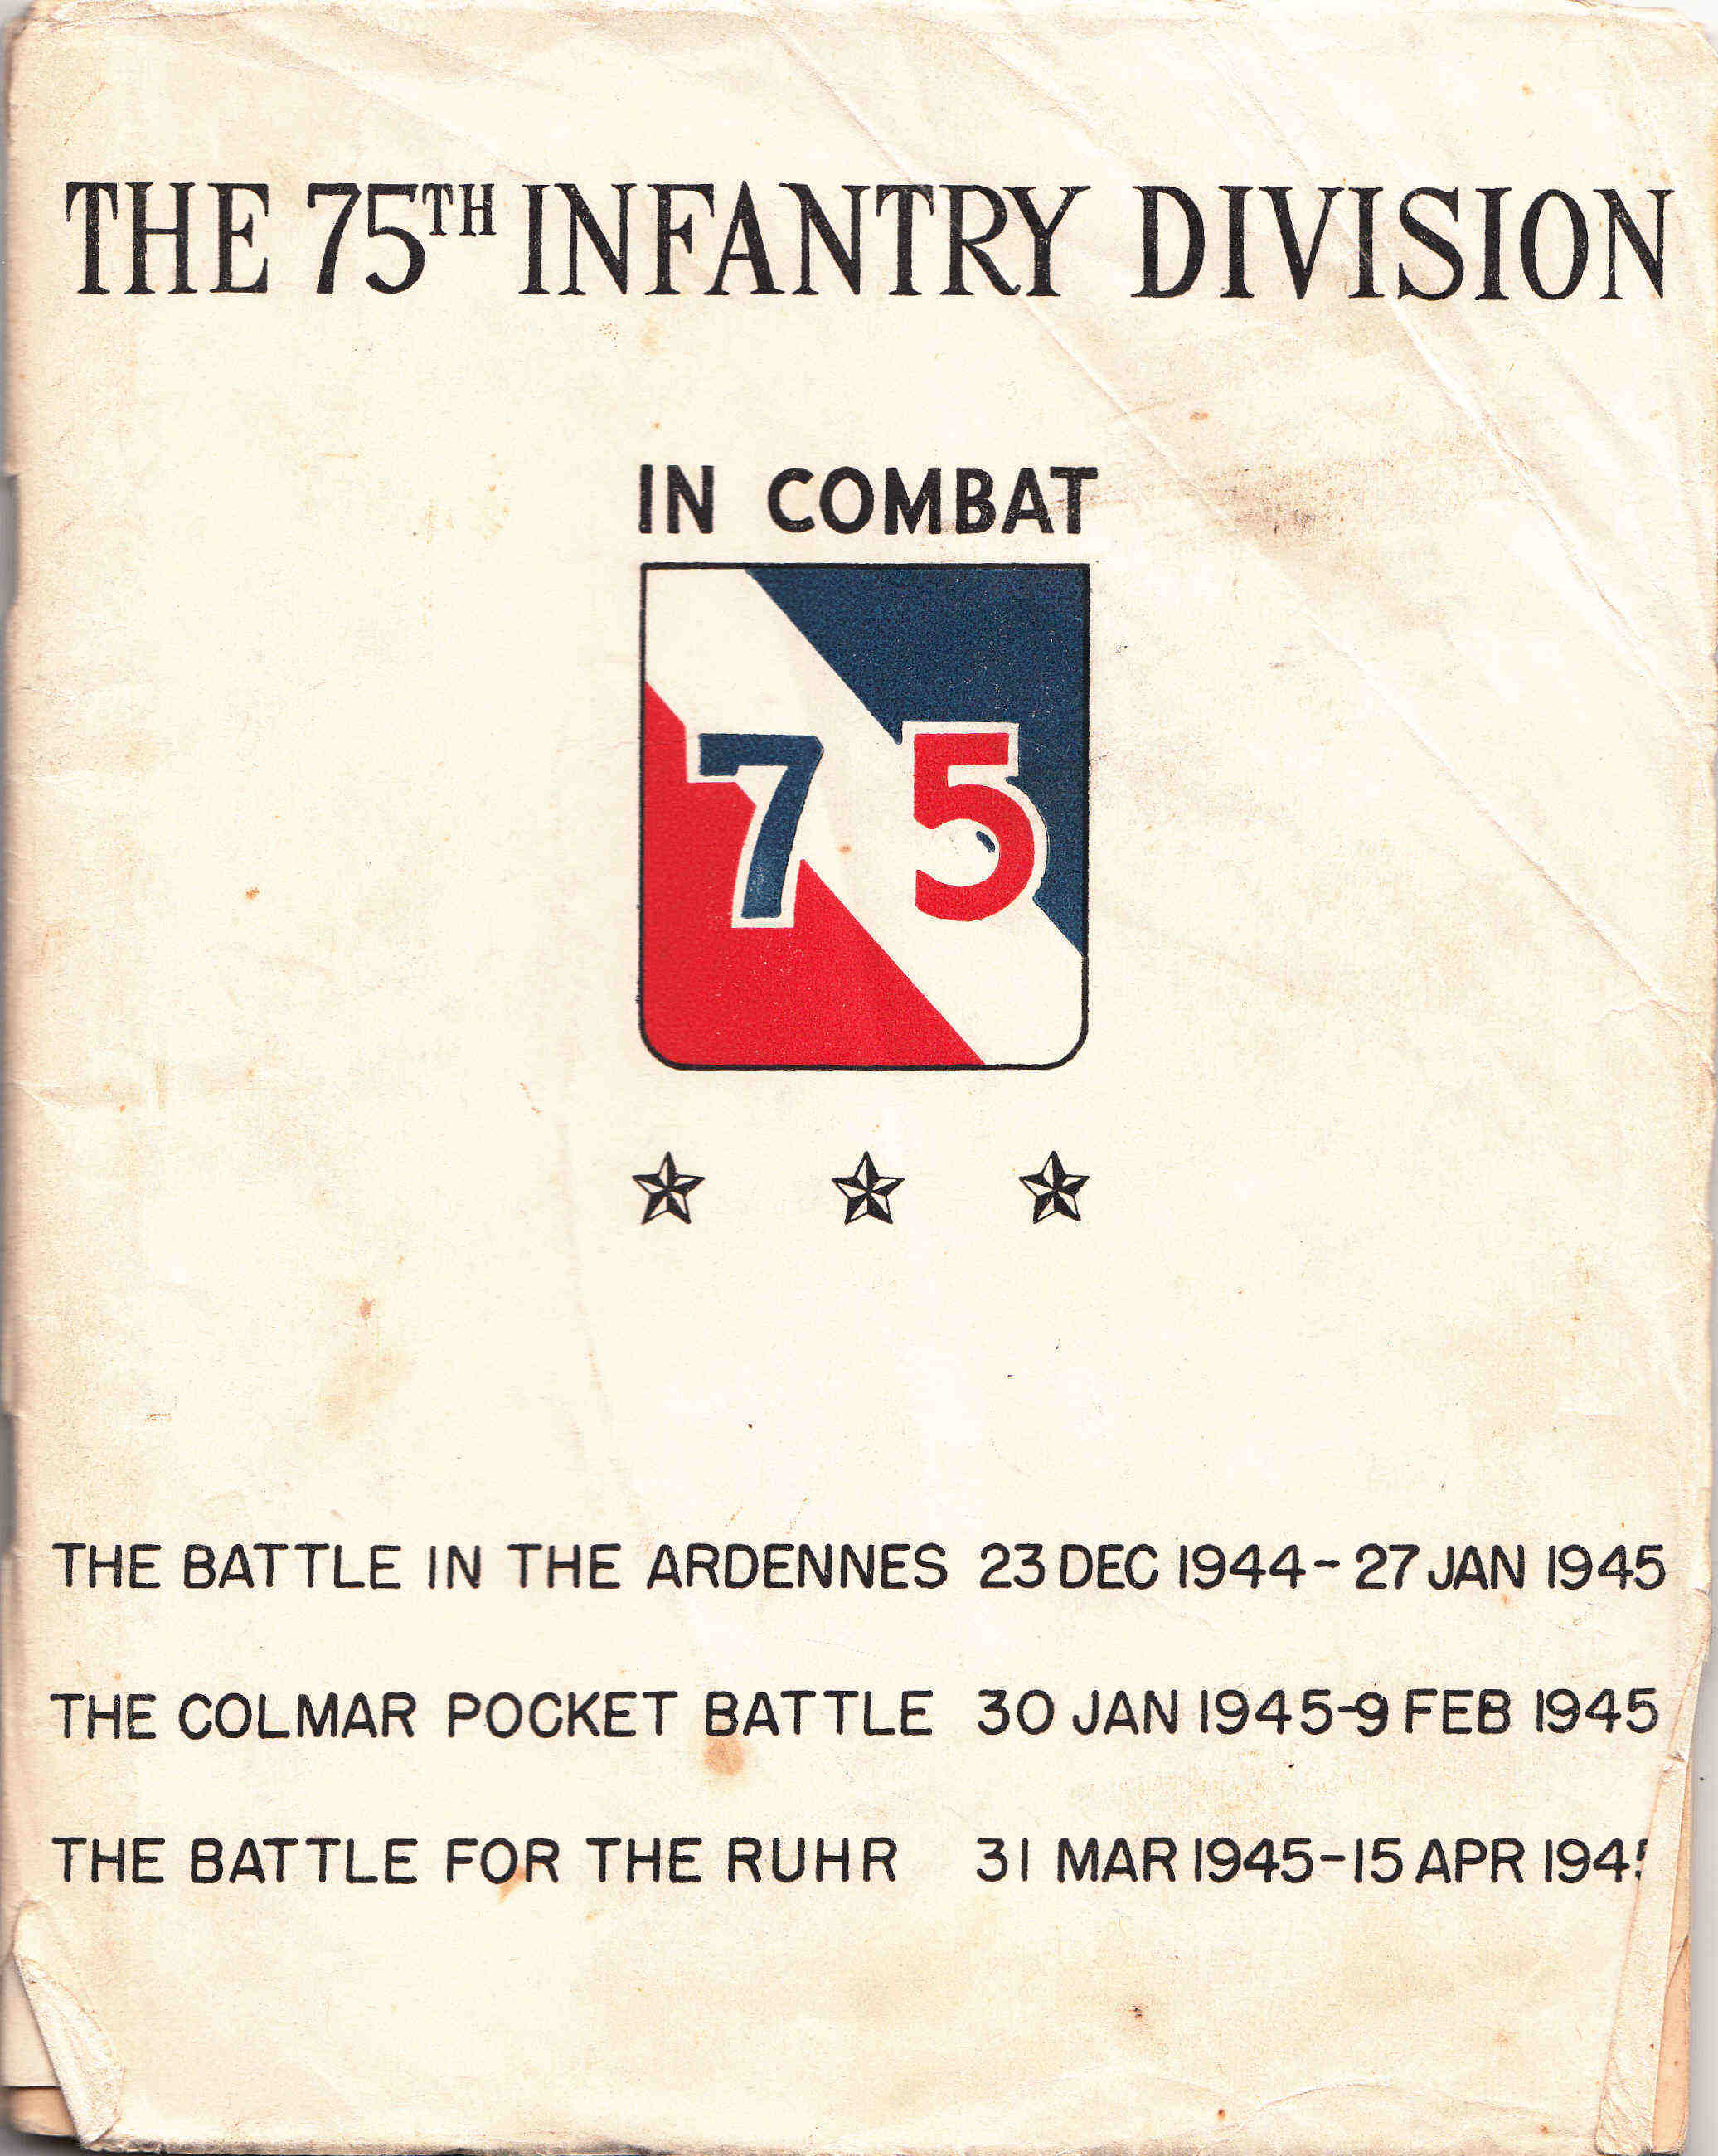 The 75th Infantry Division in Combat